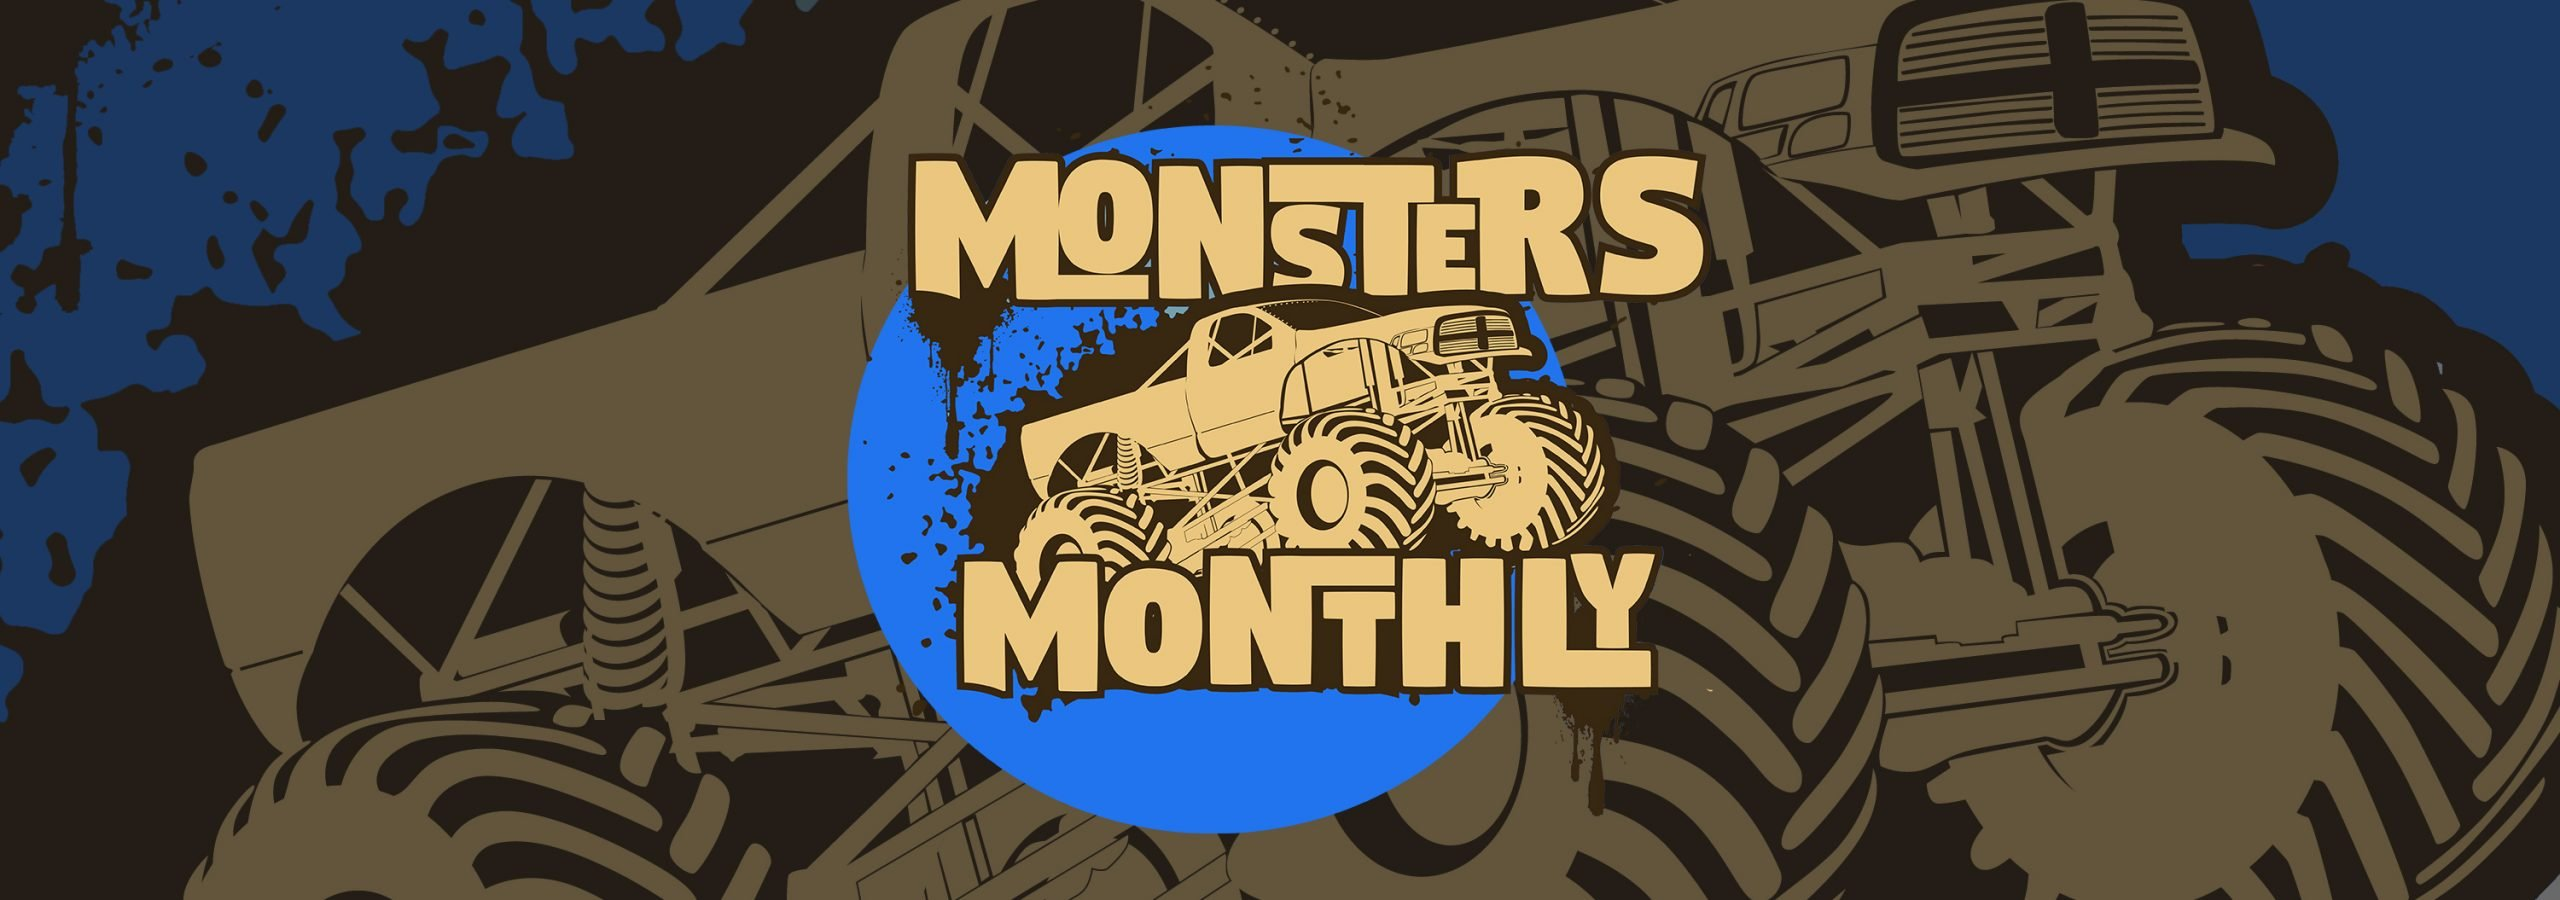 Monsters Monthly - Live Events Schedule